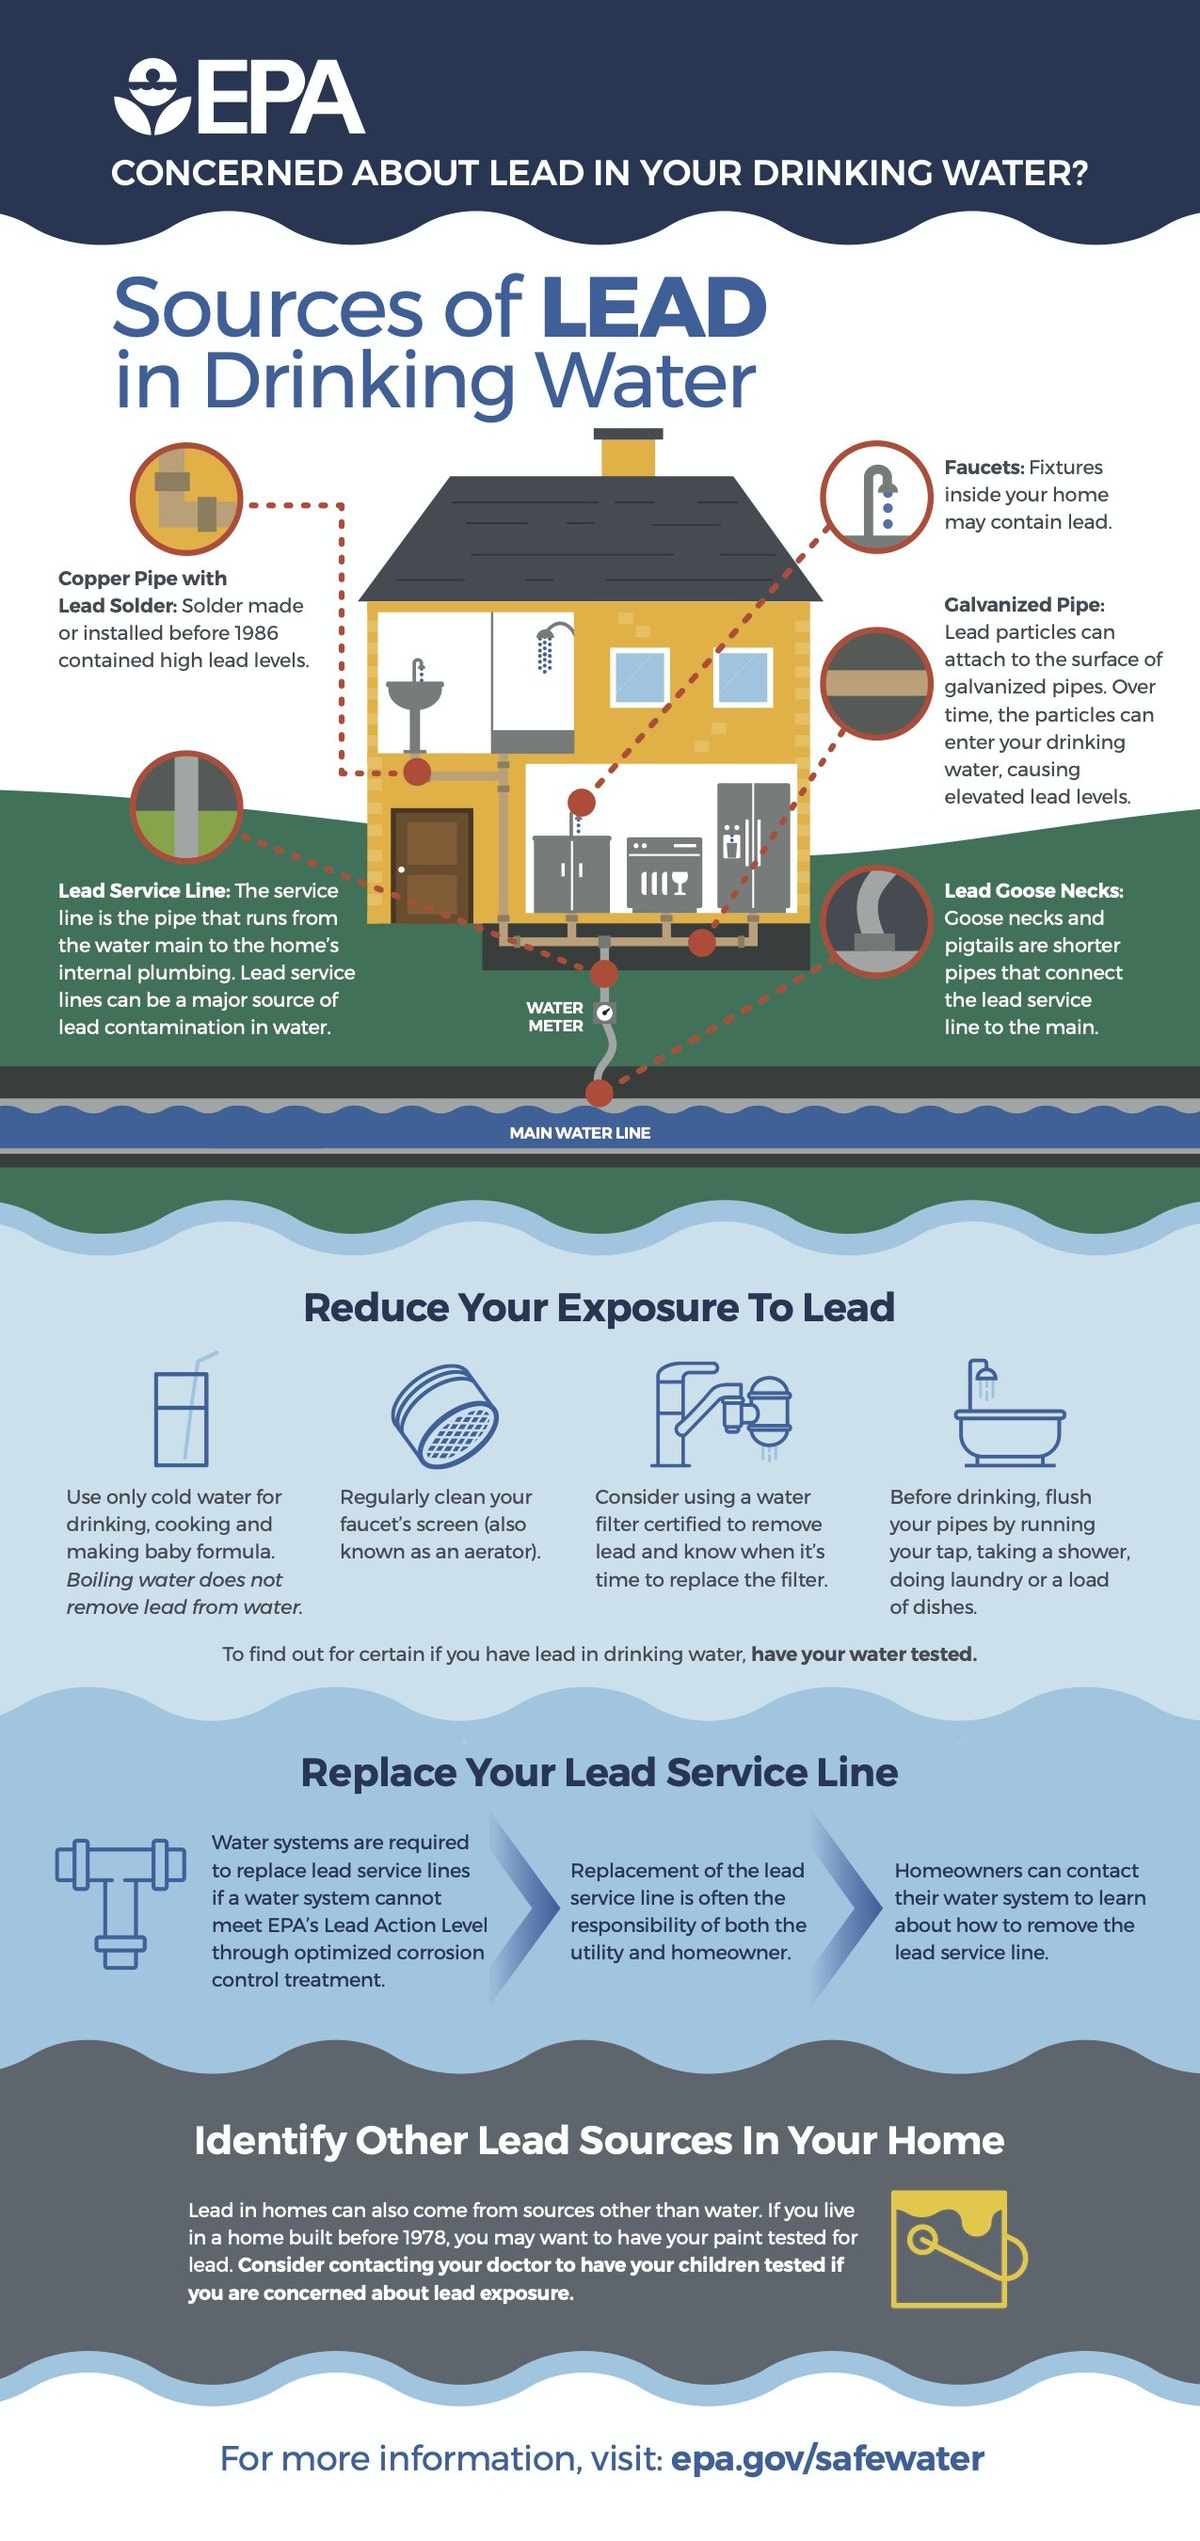 EPA Lead in drinking water infographic